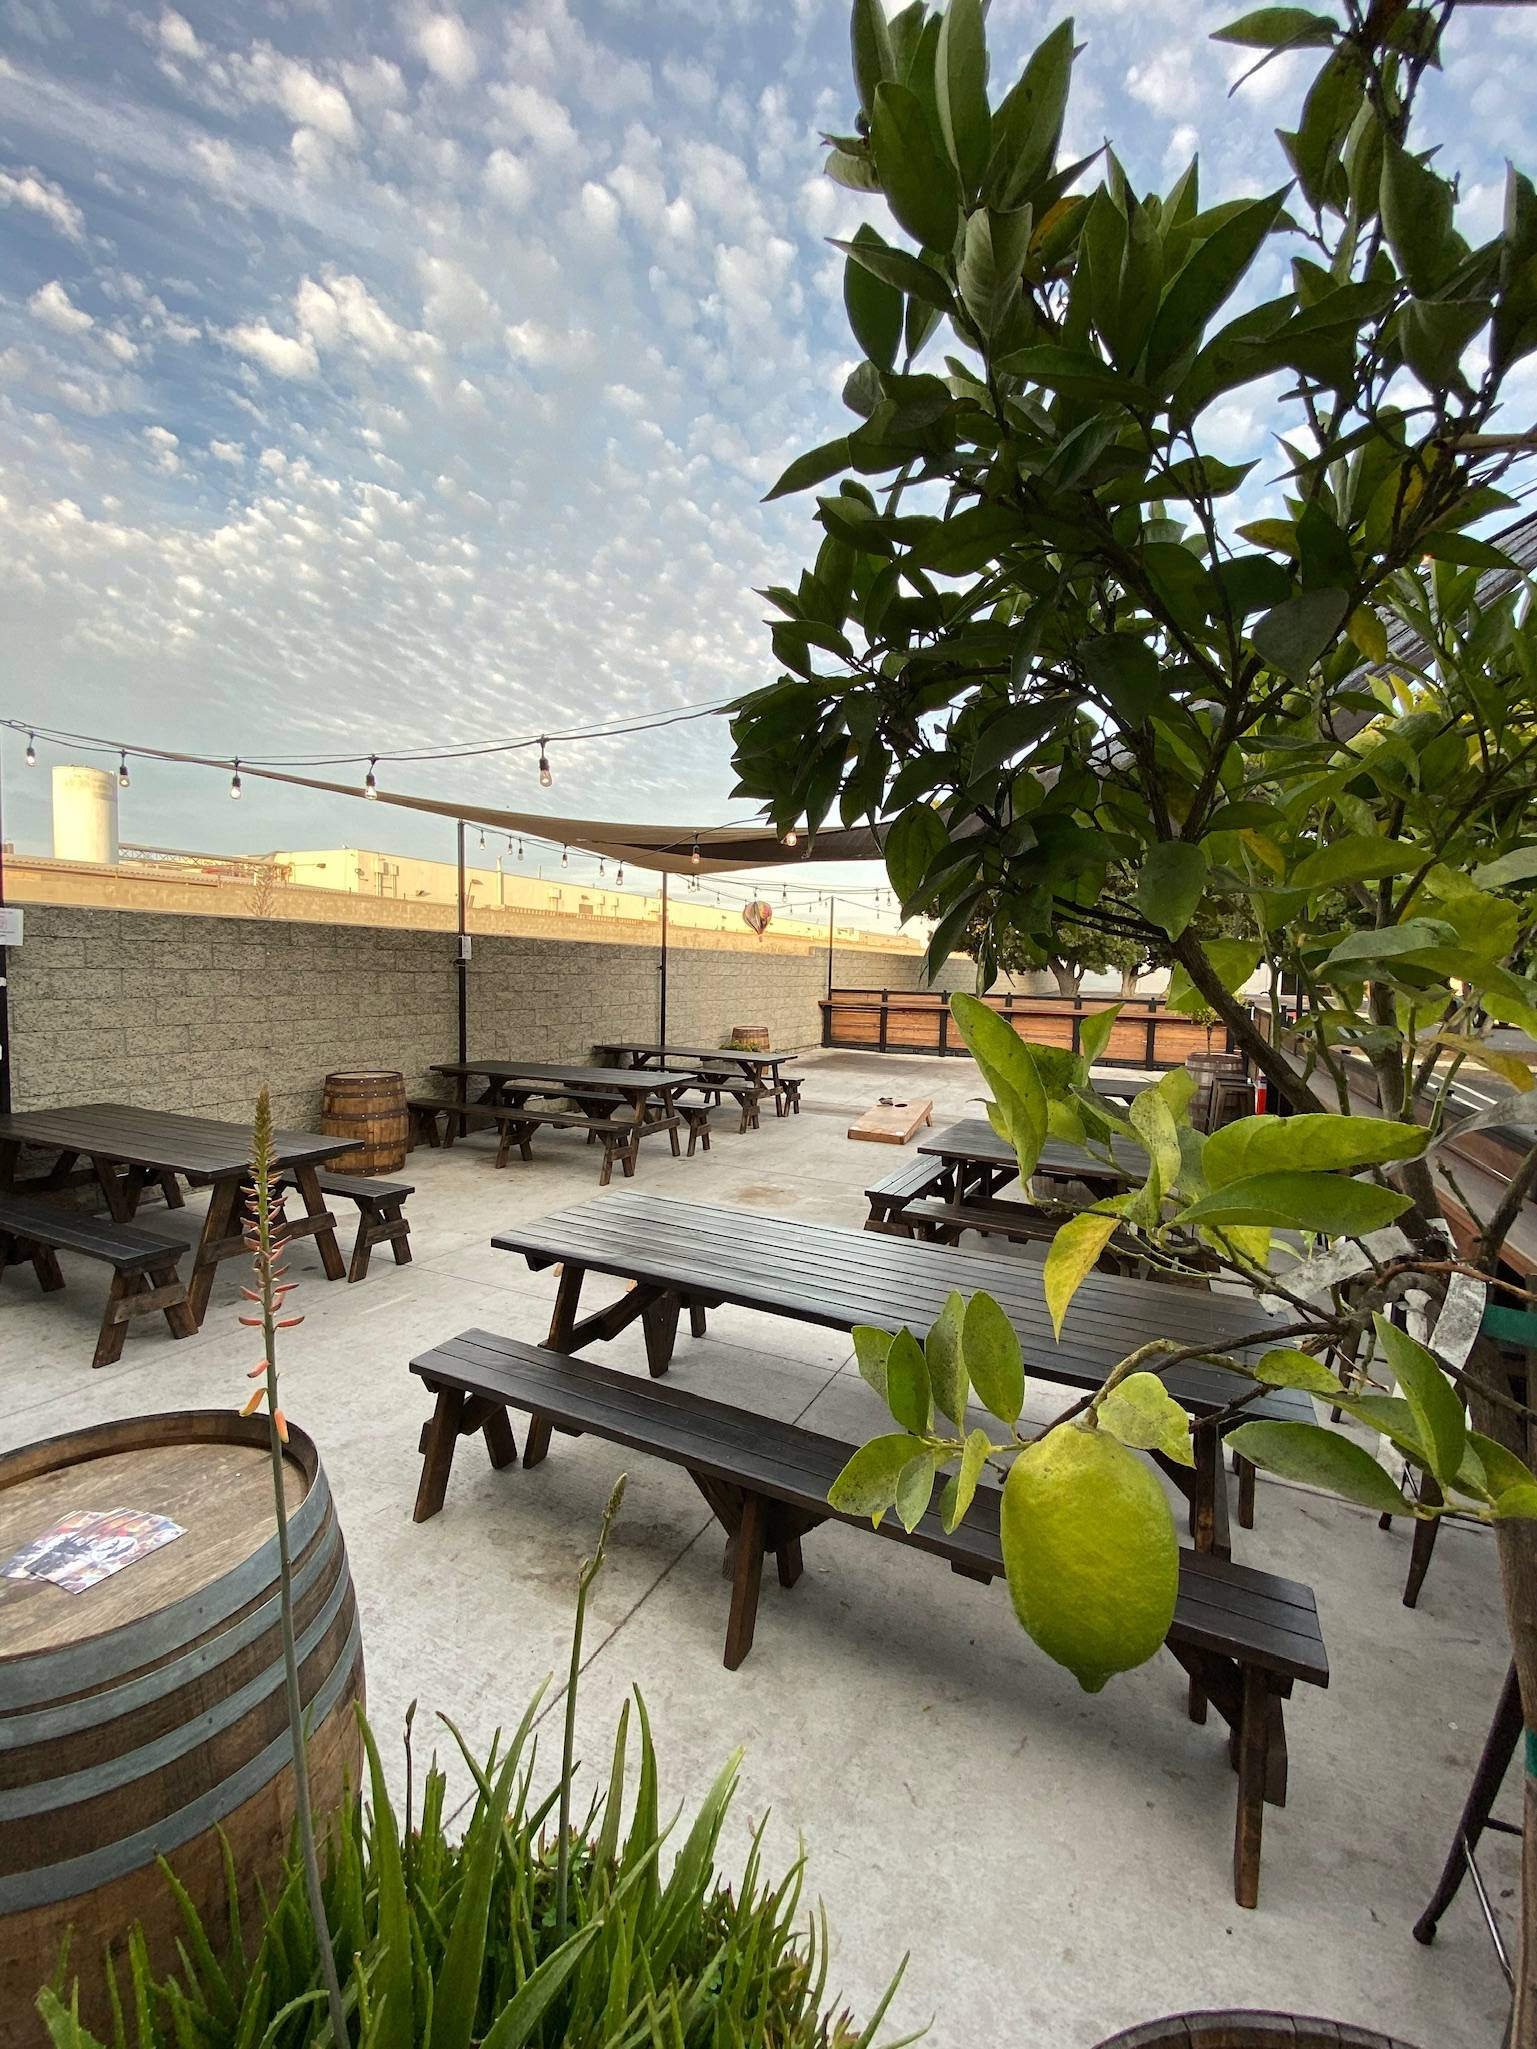 the taproom patio looks inviting and comfortable with picnic tables, cornhole game, cocktail barrel tables, perfect clouds above and a citrus tree in the foreground